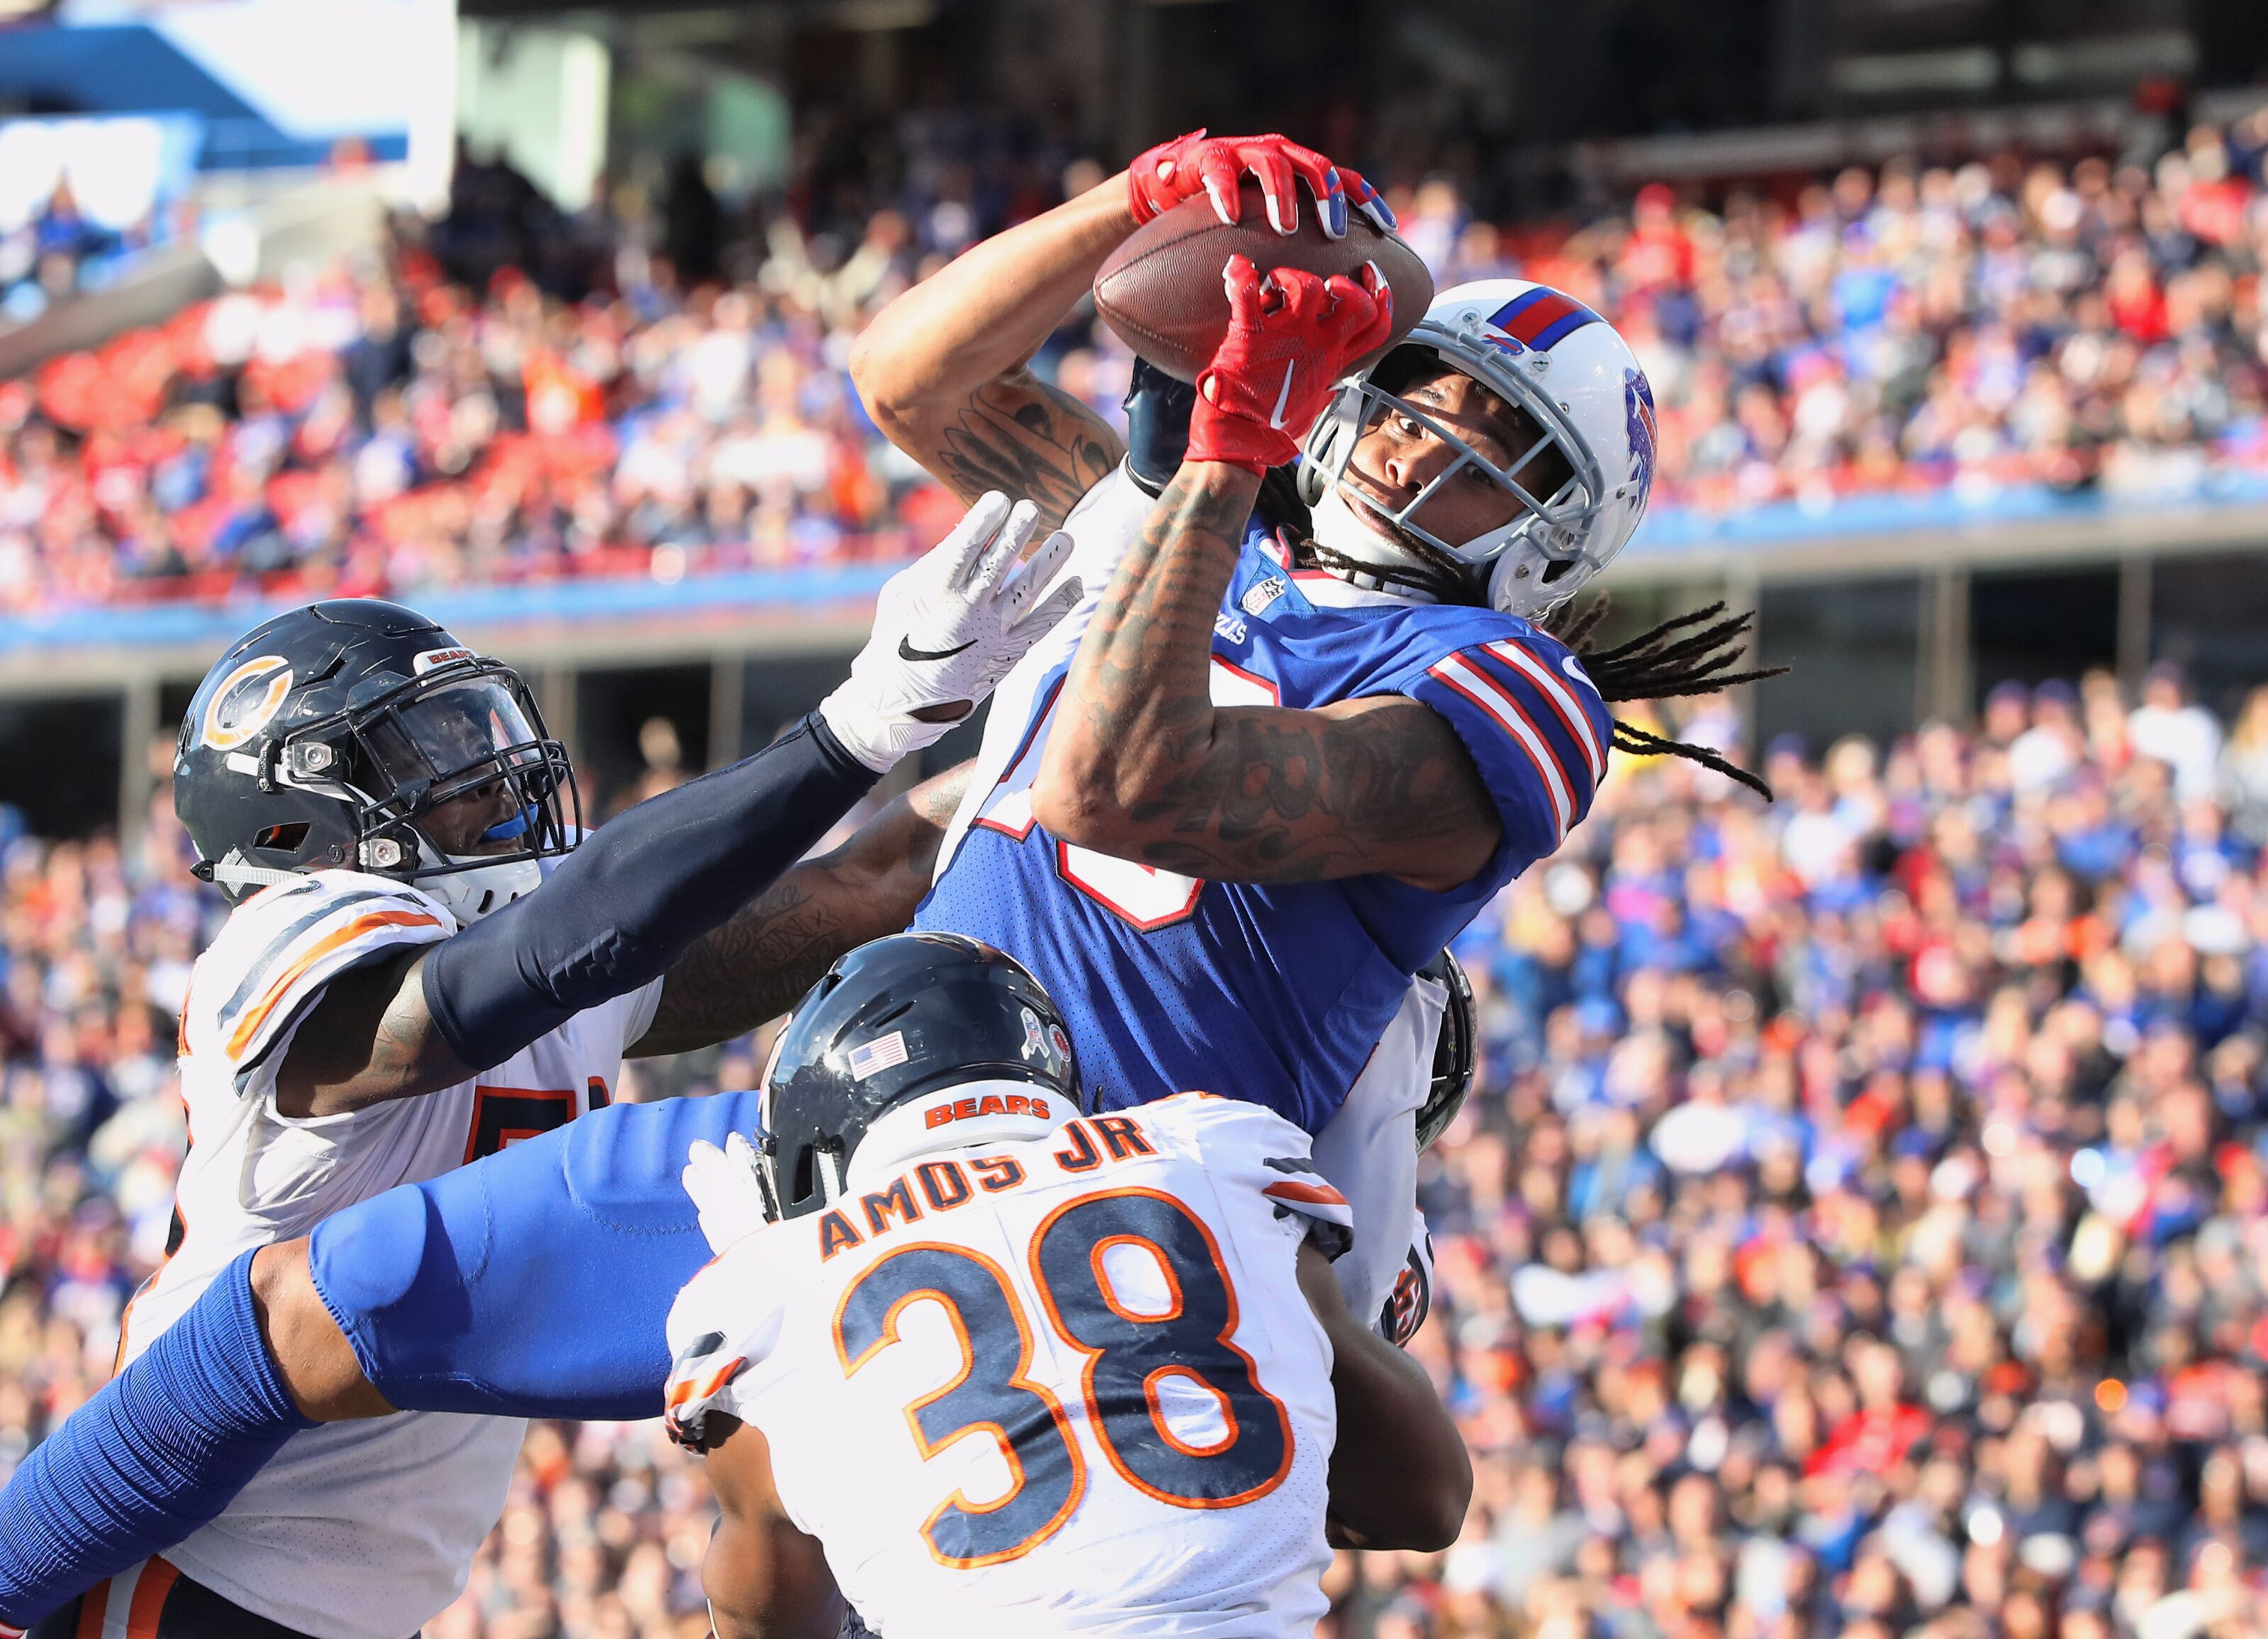 BUFFALO, NY - NOVEMBER 04: Kelvin Benjamin #13 of the Buffalo Bills cannot hang on to a pass in the end zone as he drops the ball in the third quarter during NFL game action as he is hit by Adrian Amos Jr. #38 of the Chicago Bears at New Era Field on November 4, 2018 in Buffalo, New York. (Photo by Tom Szczerbowski/Getty Images)